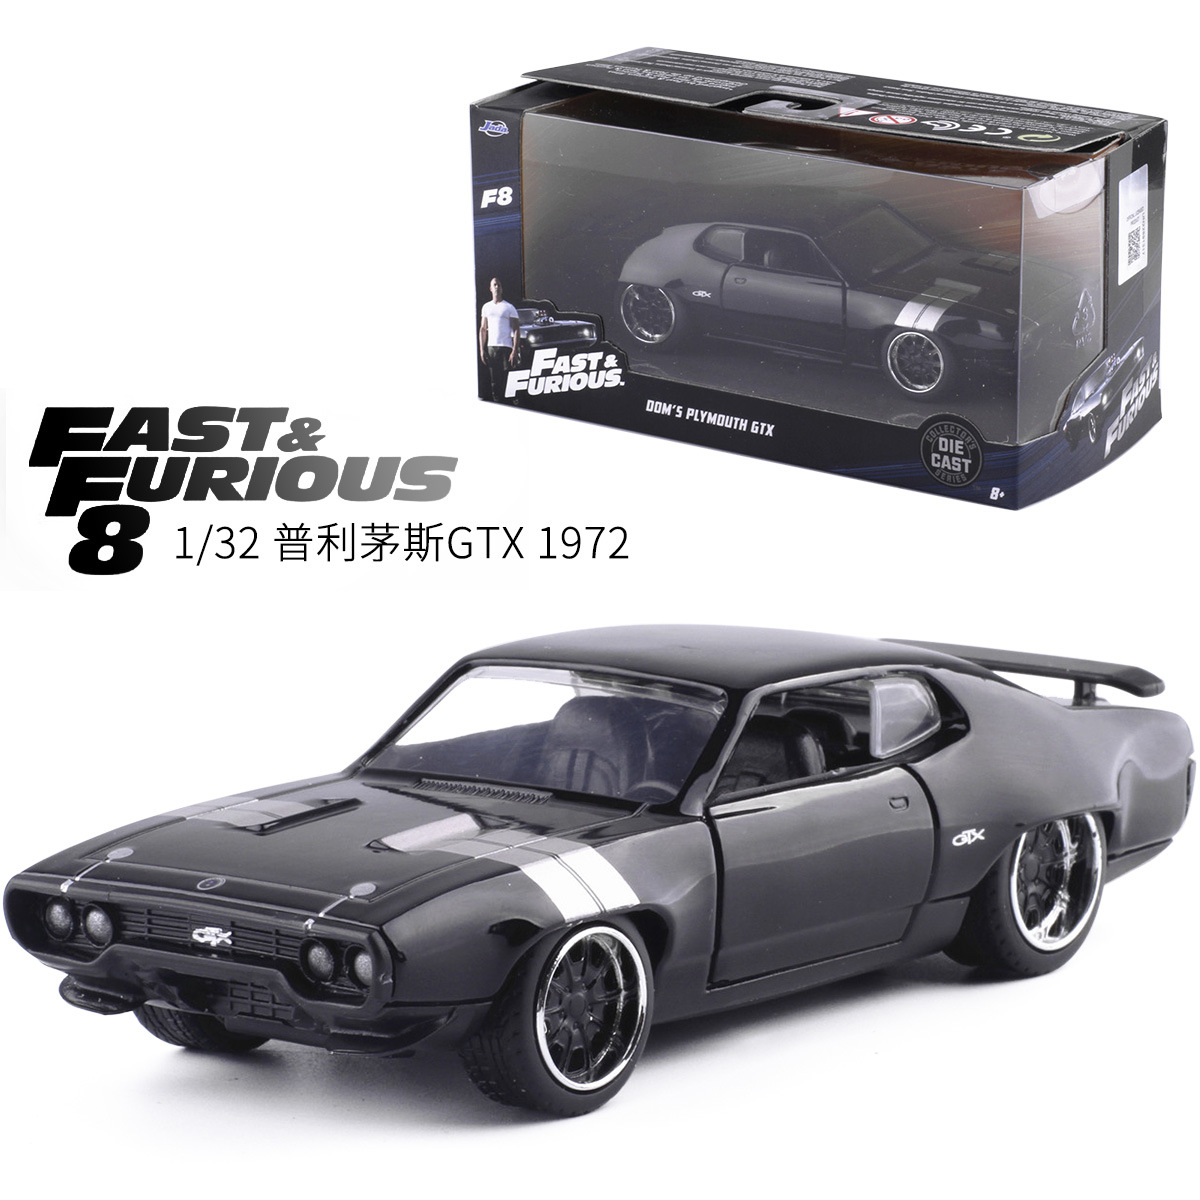 Jada1:32 Fast And Furious Alloy Car 1972 Plymouth GTX Metal Diecast Classical Street Race Model Toy Collection For Children Gift